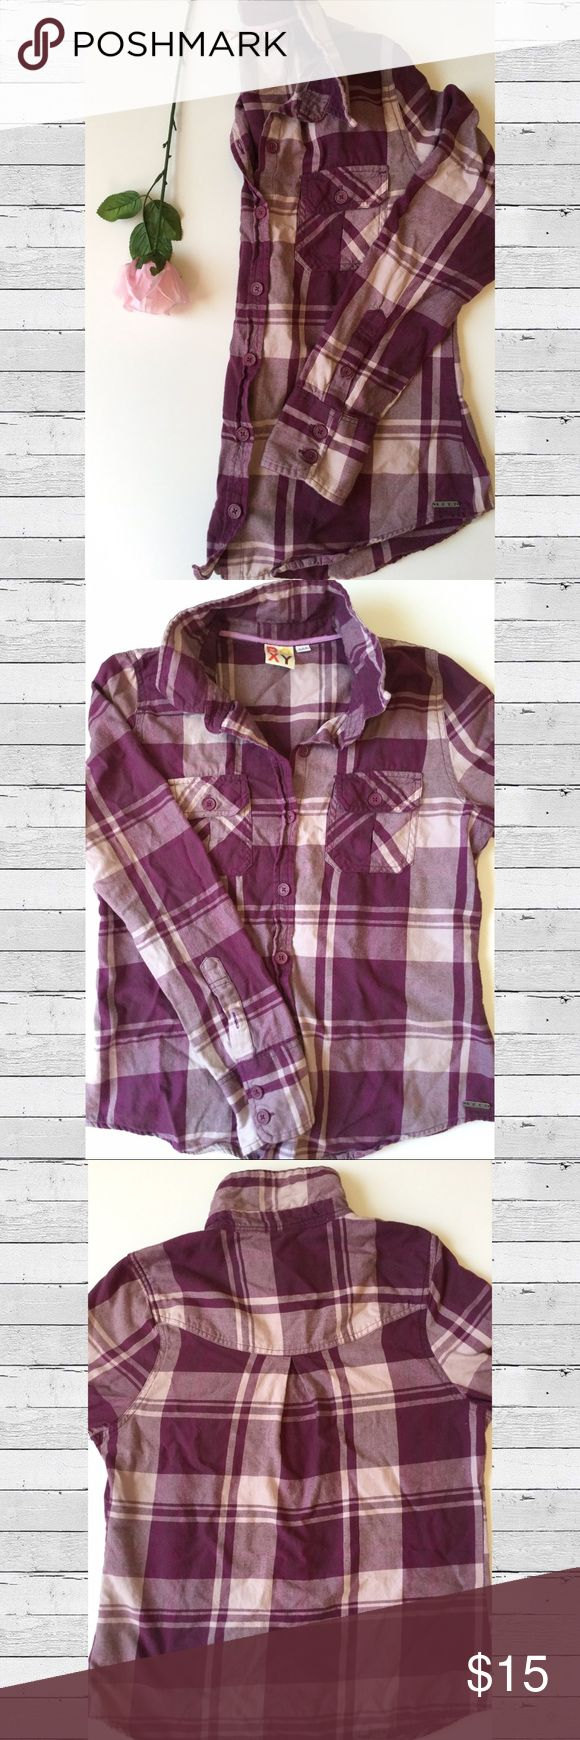  Roxy Shades of Purple Plaid Button-up Shirt Roxy button-up plaid shirt featuring various shades of purple.   Elements: Double button cuffs Button on sleeve for cuff to roll up 2 button flap breast pockets Pleating detail in upper back  Flattering shirt! Roxy Tops Button Down Shirts